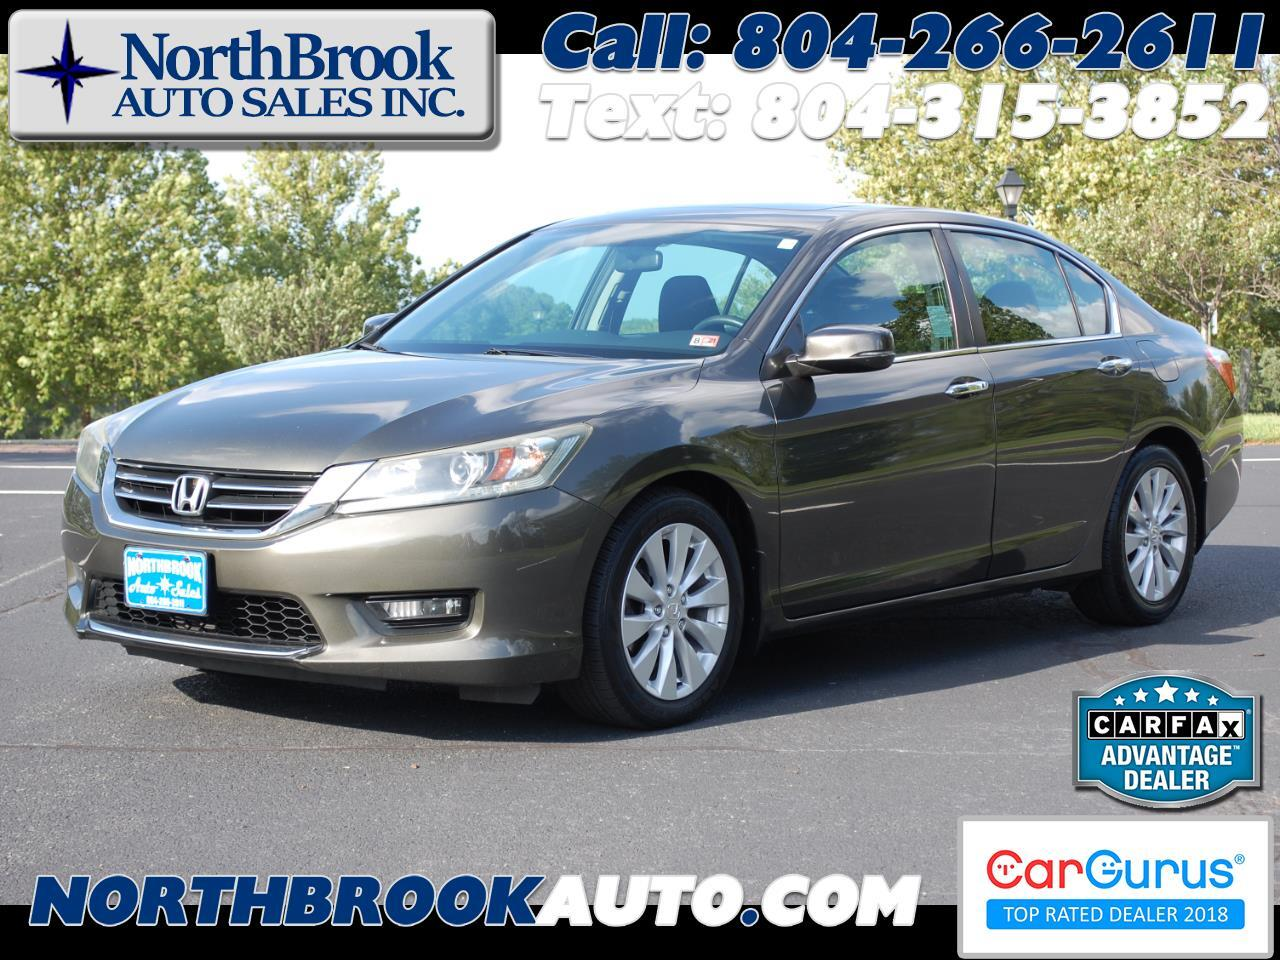 Honda Accord Sedan 4dr I4 CVT EX 2014